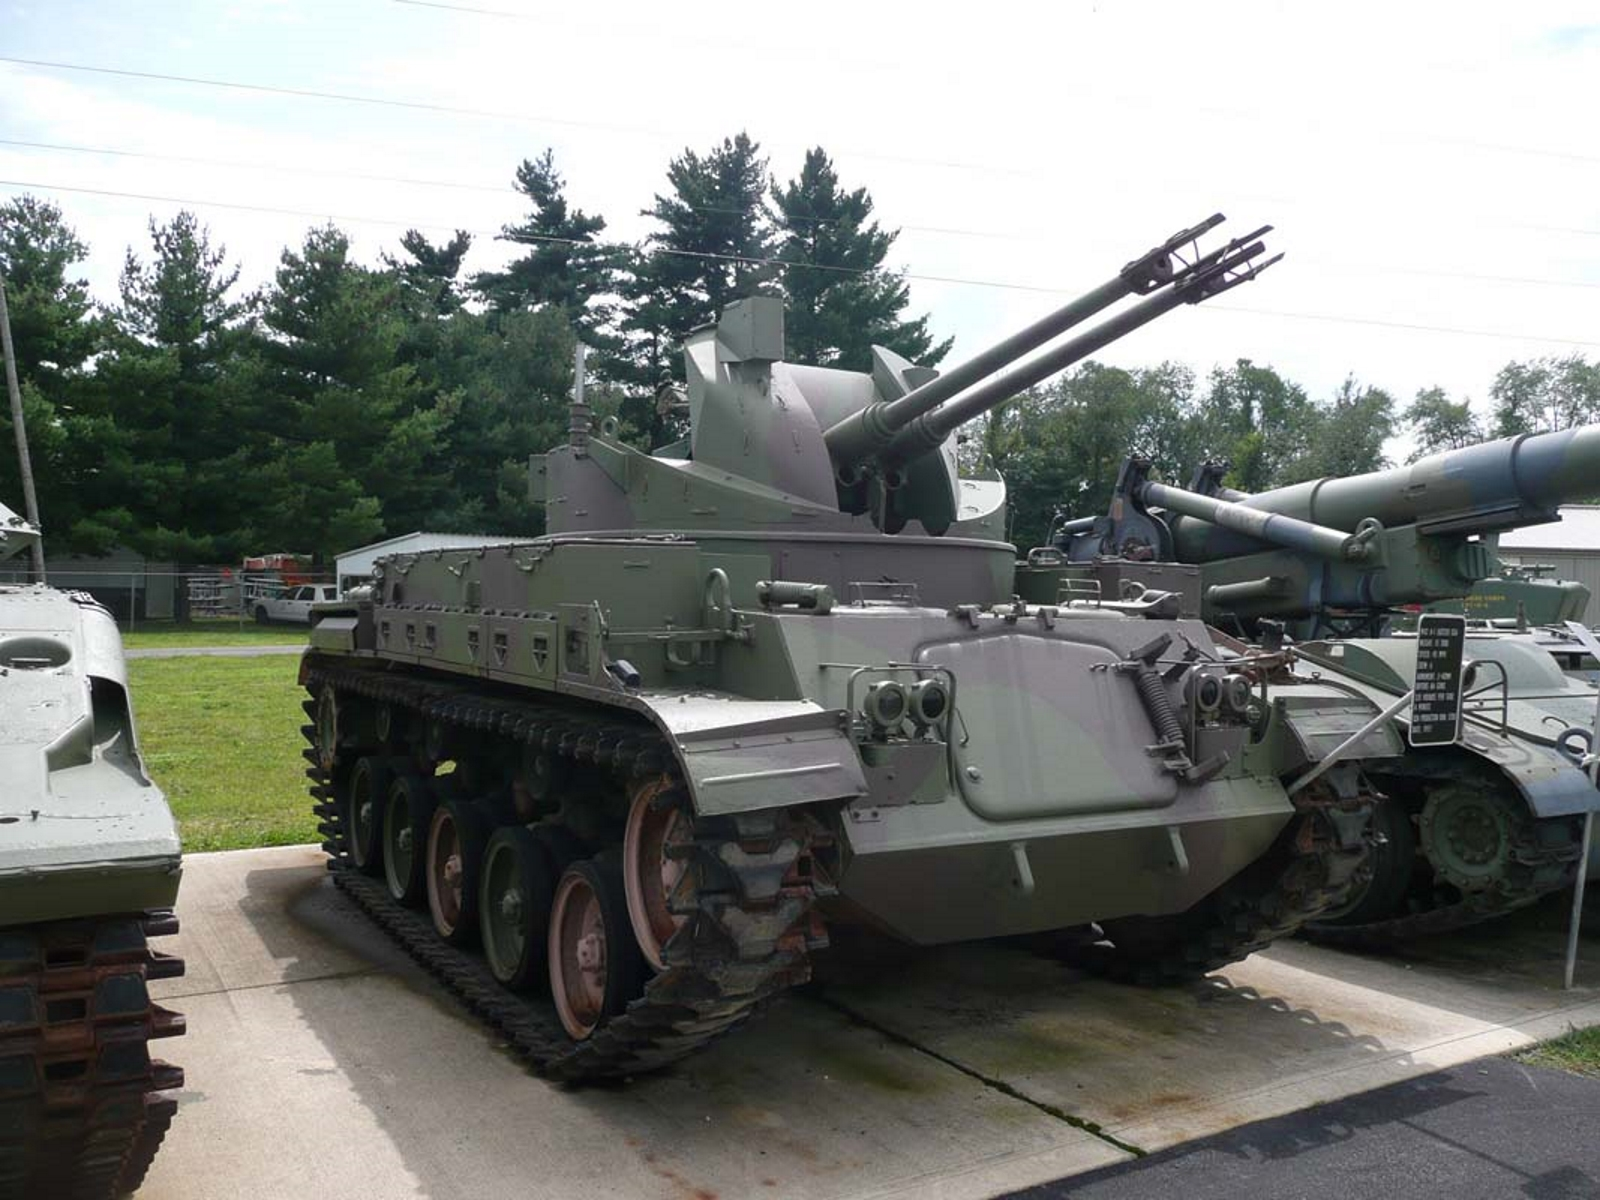 M42A1 Duster